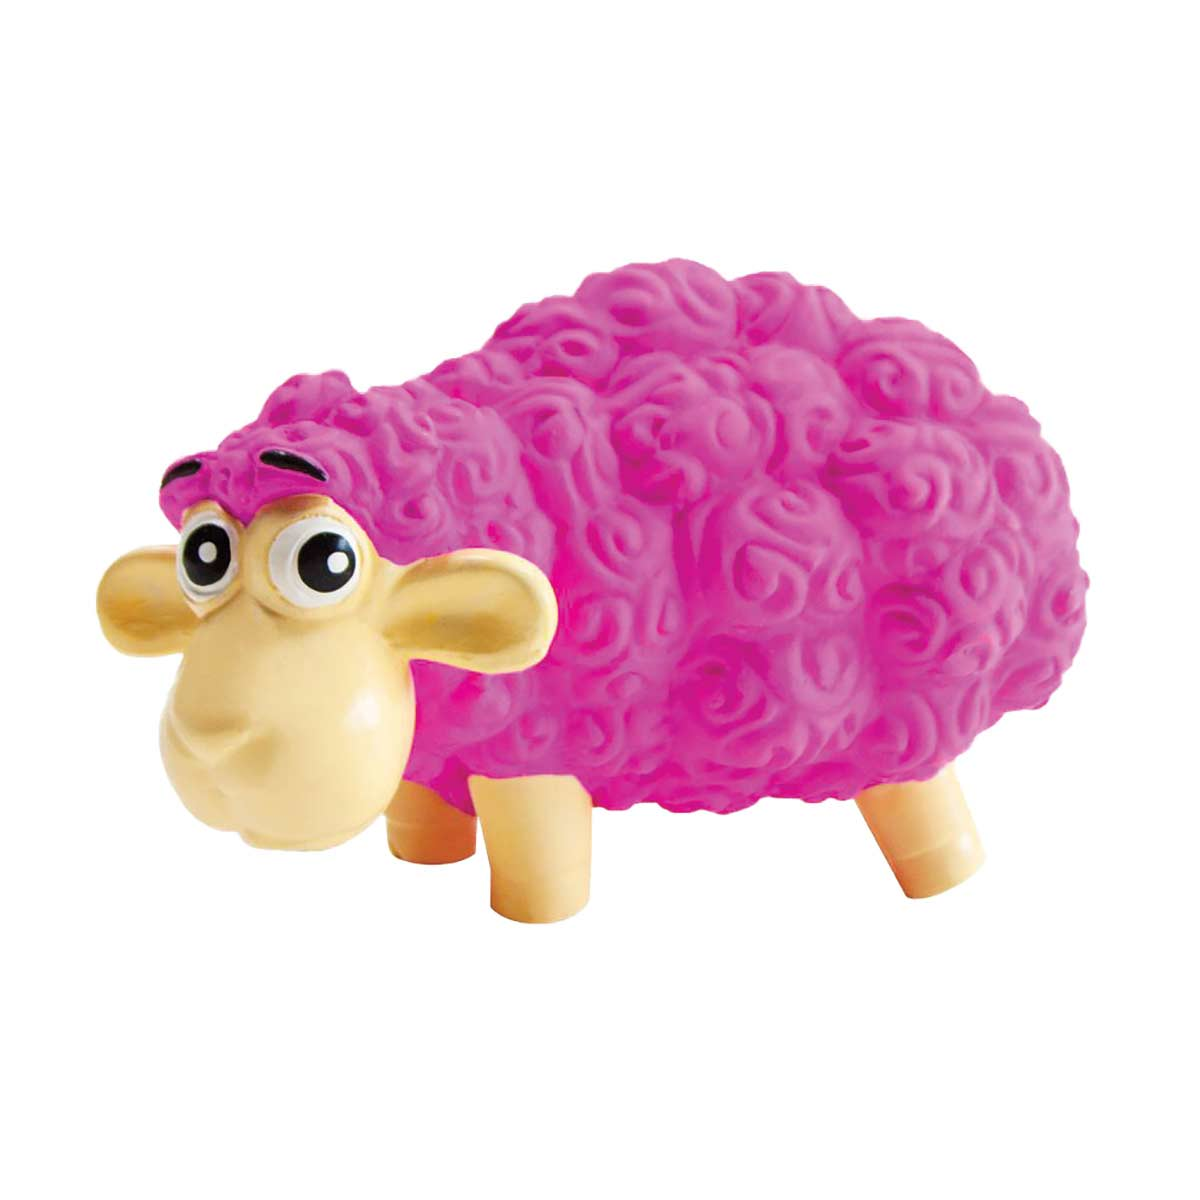 Outward Hound Tootiez Pink Sheep 6.5""